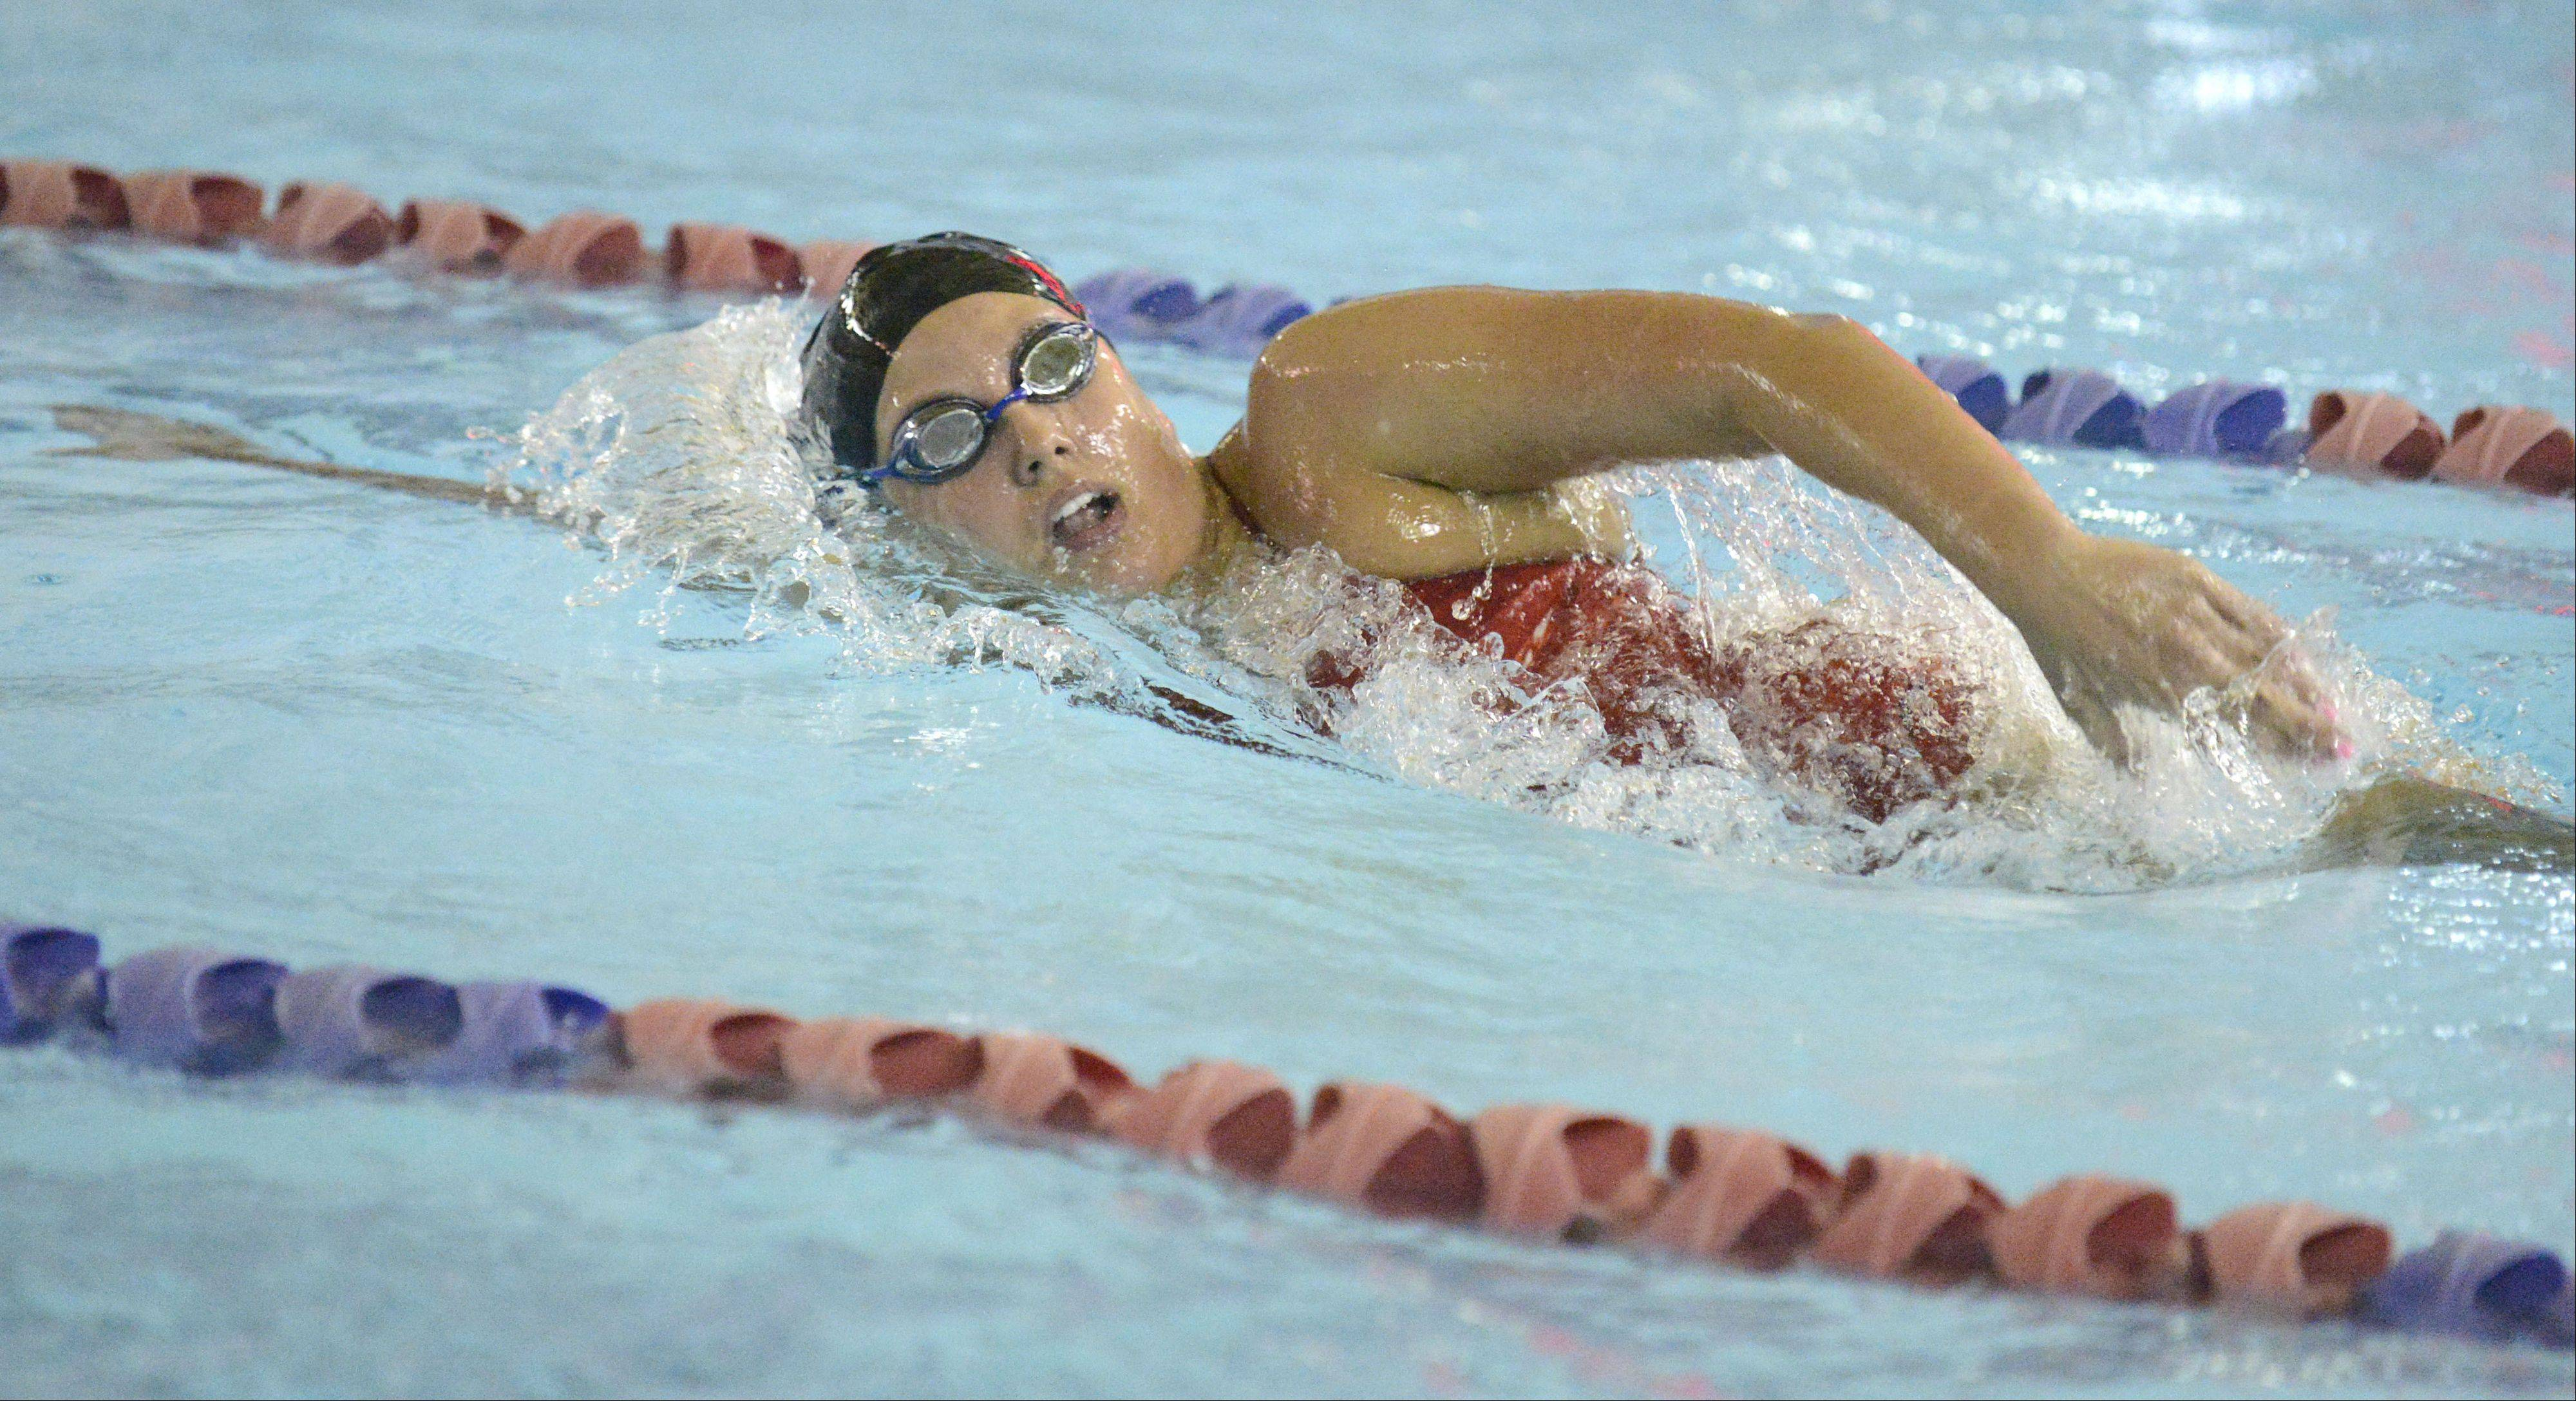 Naperville Central's Kelley Lehane takes first place in the second heat of the 500 yard freestyle at the Rosary Invitational on Saturday, September 28.